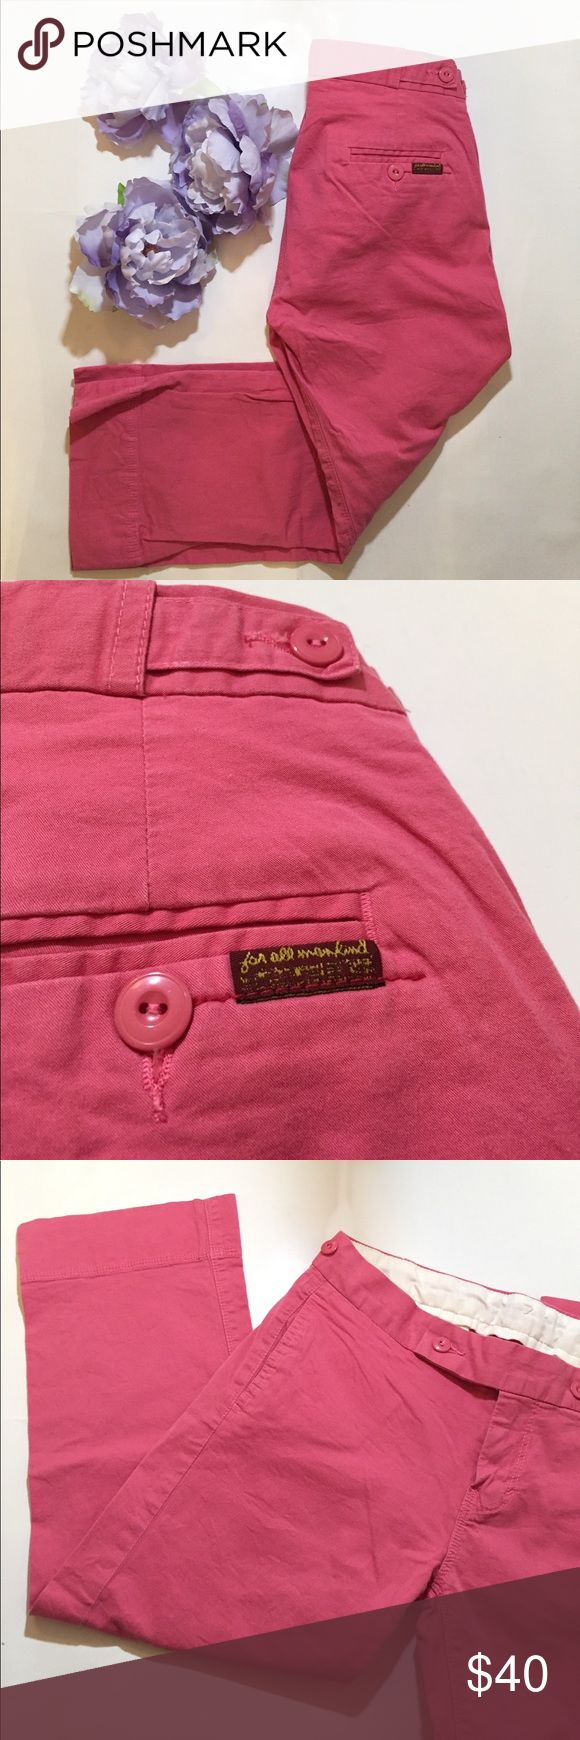 7 for all mankind coral capris 7 for all mankind coral capris / gently worn twice 7 For All Mankind Pants Capris